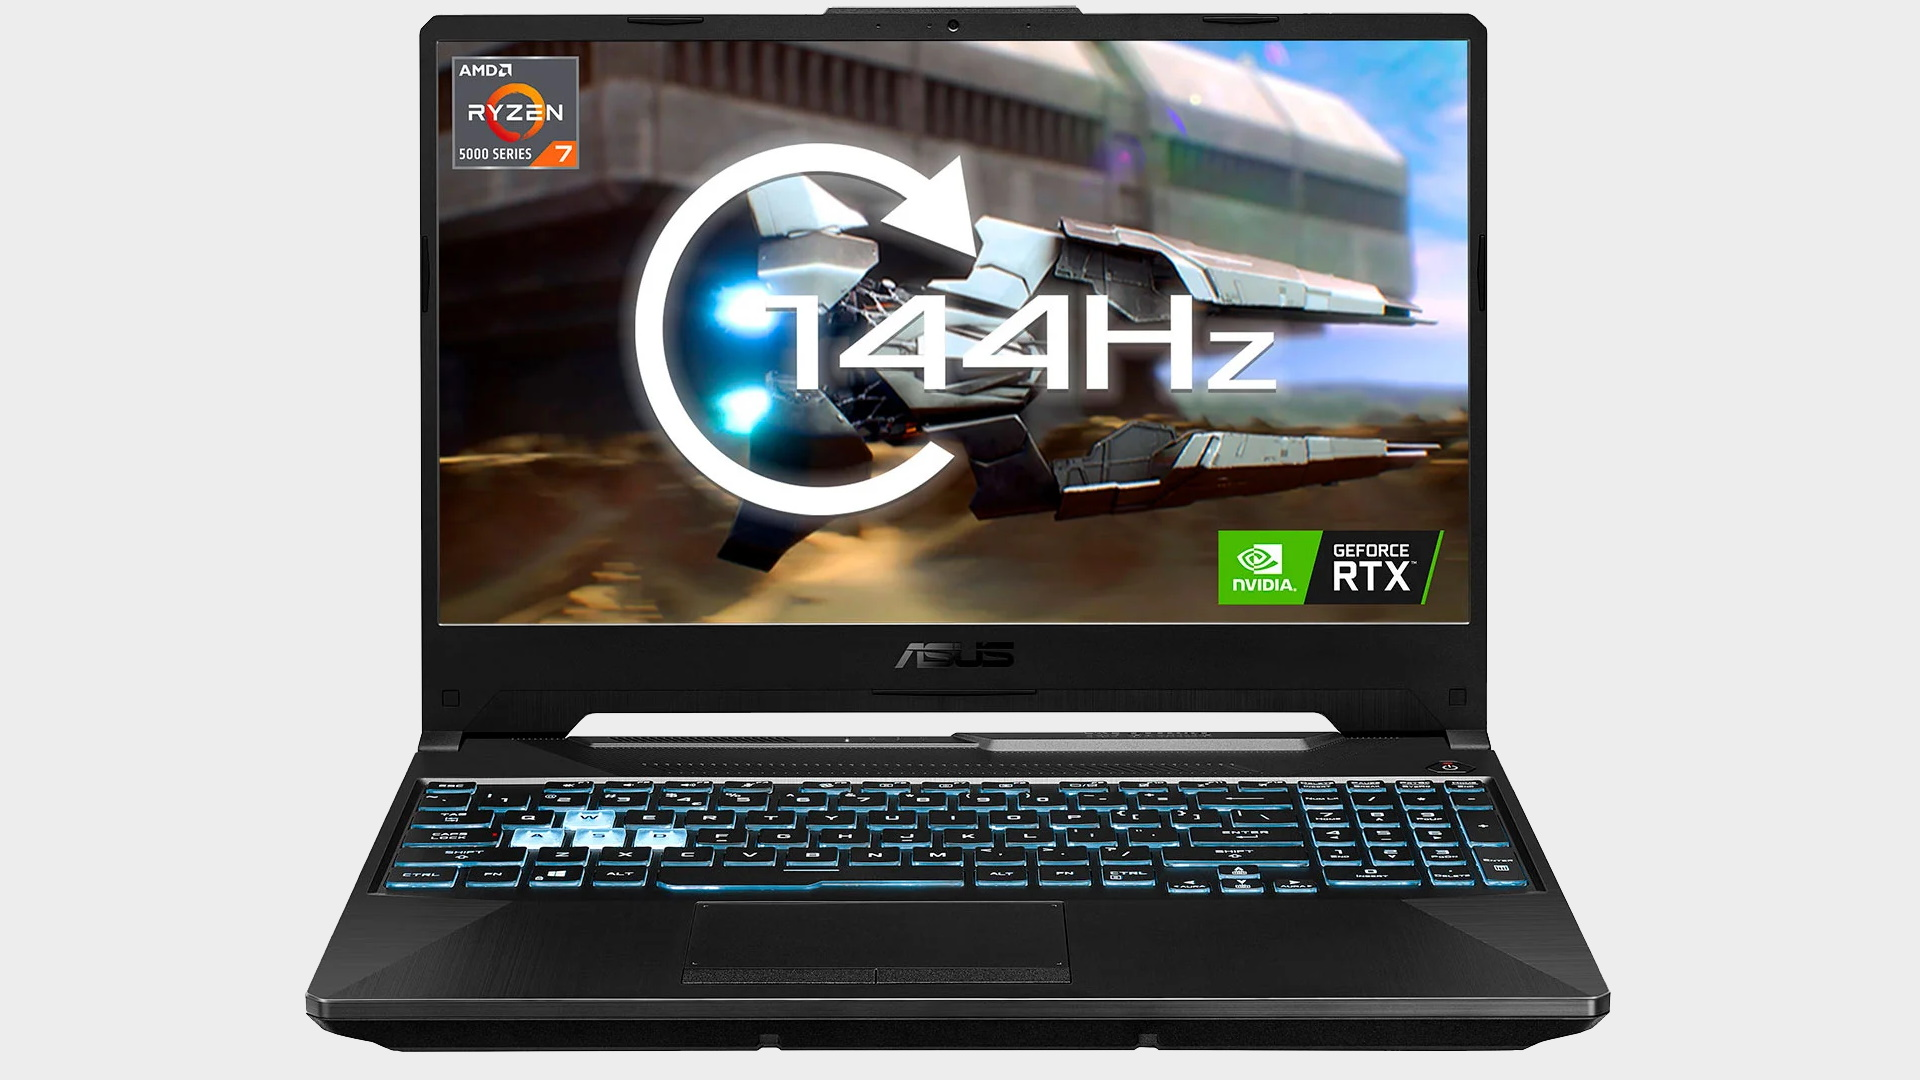 Best gaming laptop deal today: This laptop is packing an RTX 3060 for just £999